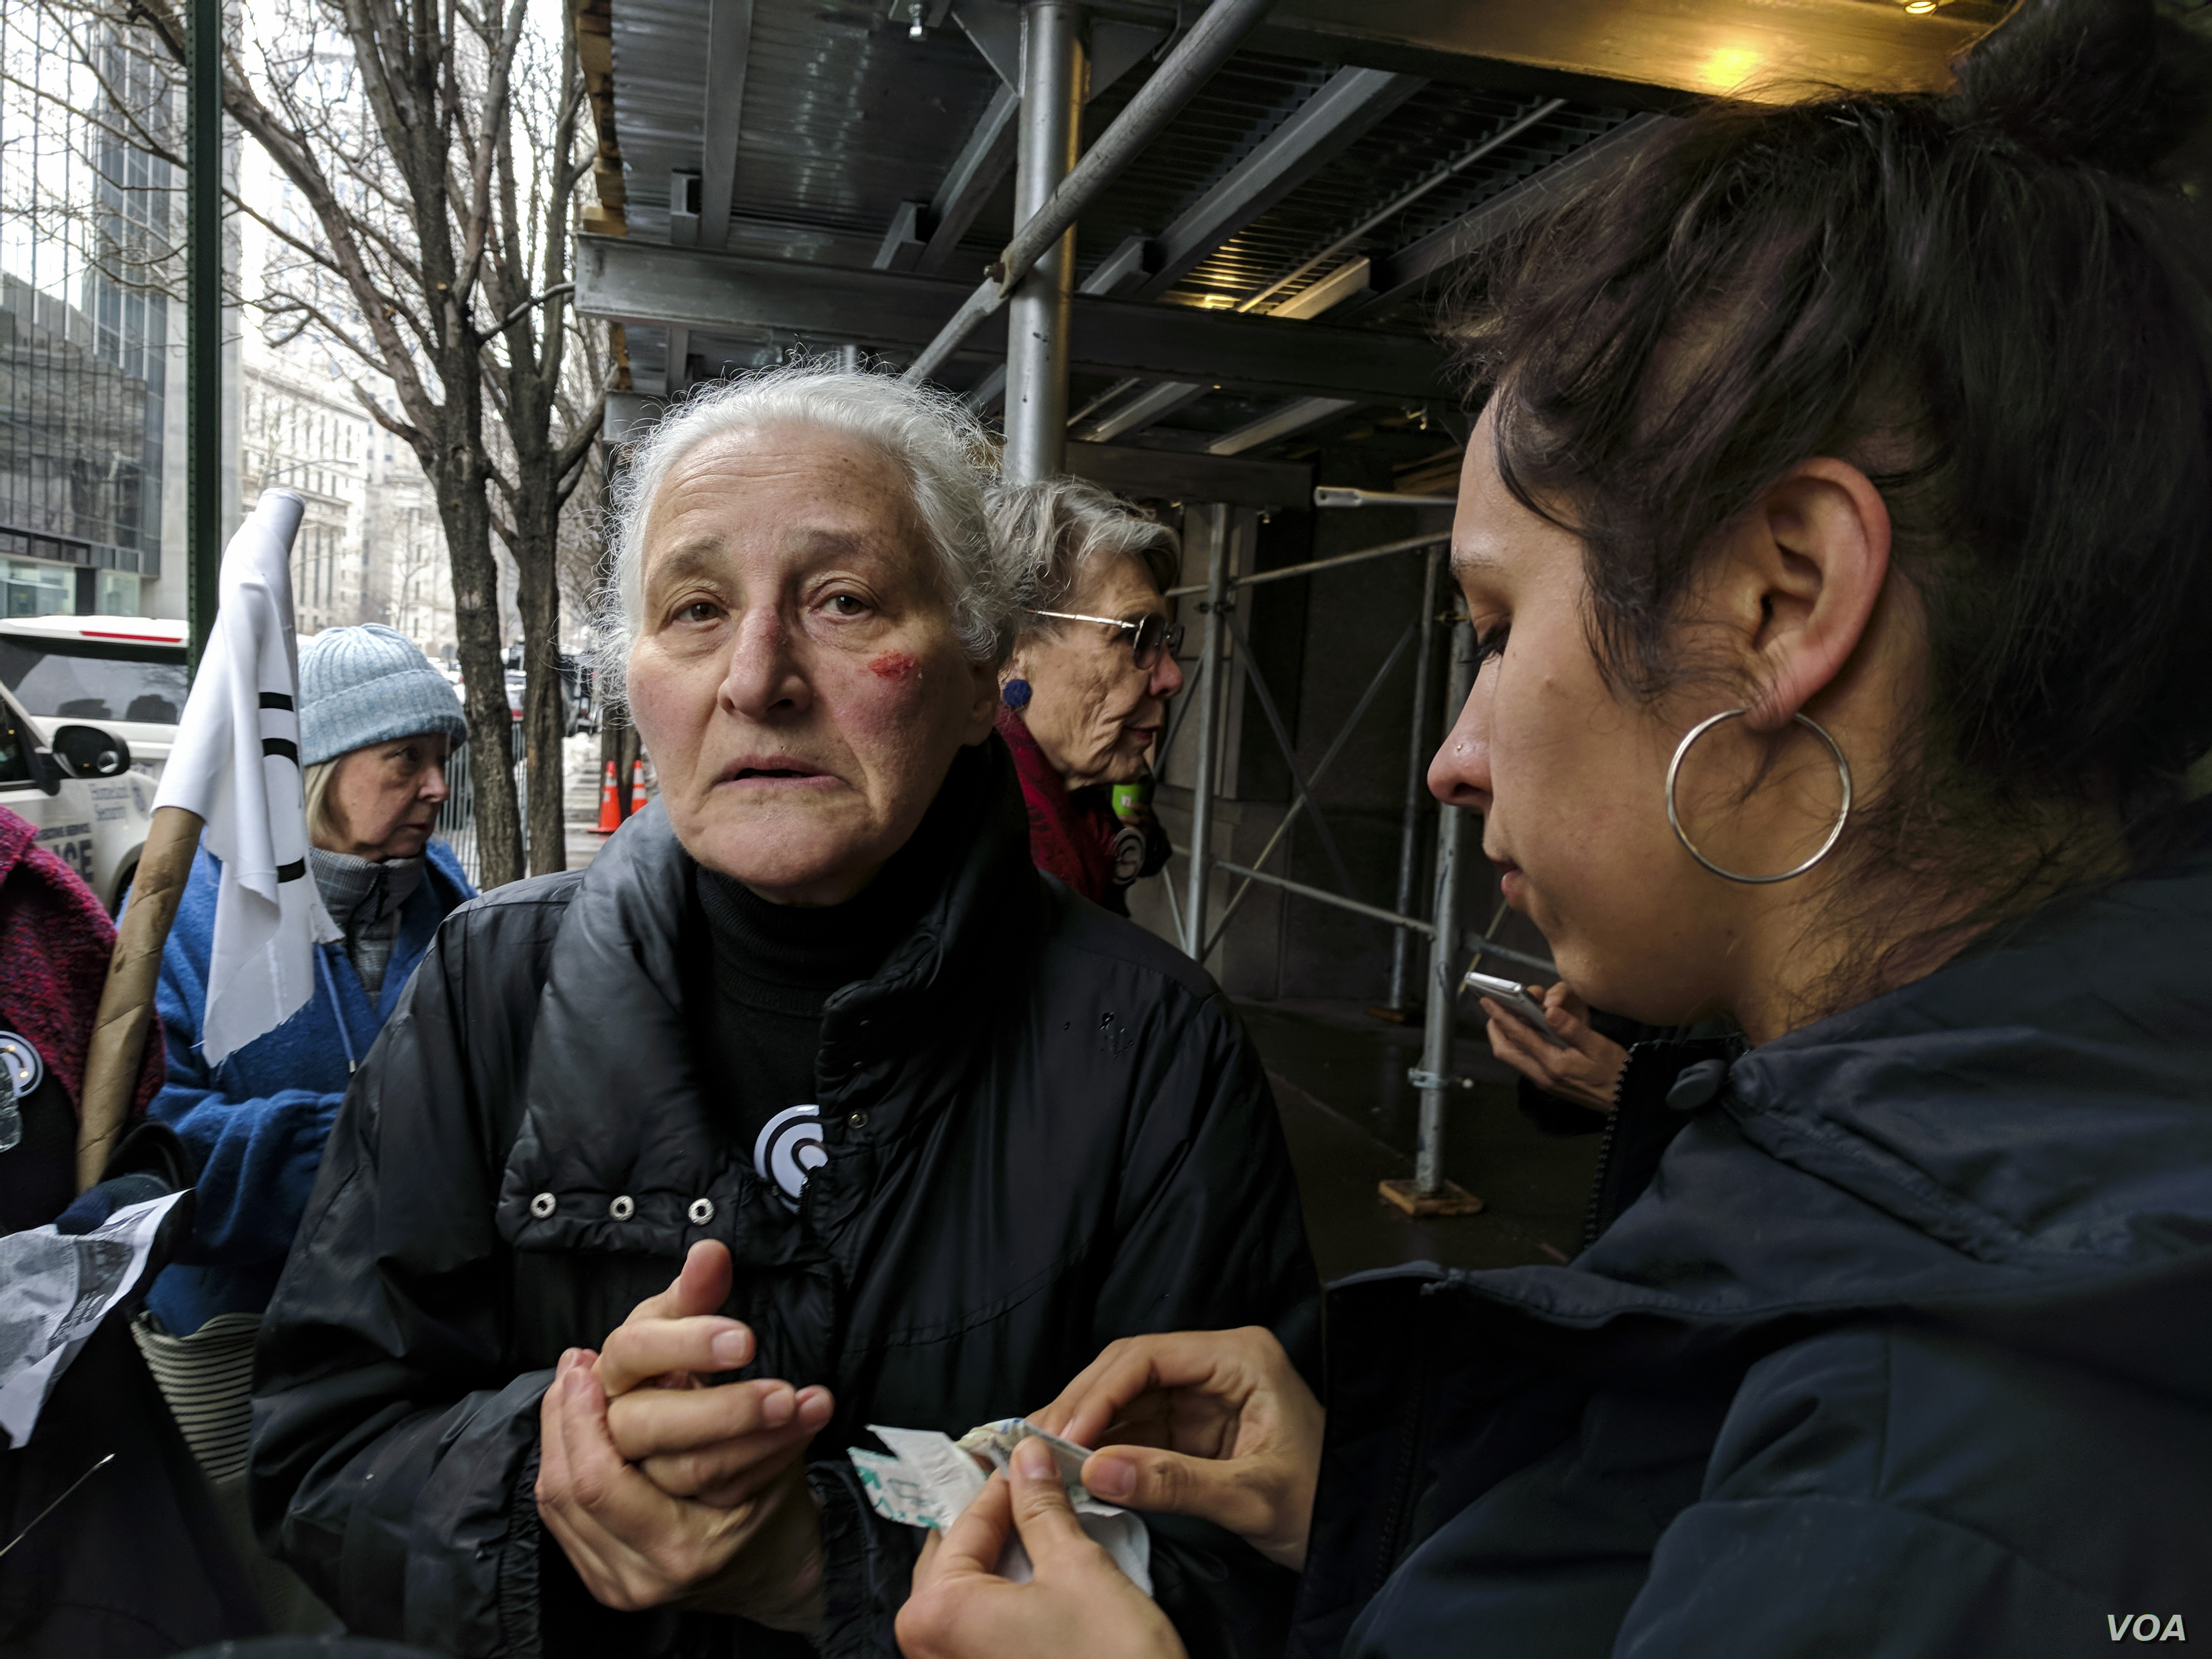 Barbara Moore, 81, tends to her wounds after a scuffle broke out between activists and police outside New York's immigration court, following news that Ravi Ragbir, a well-known immigrant-rights activist, had been detained. (R. Taylor/VOA)